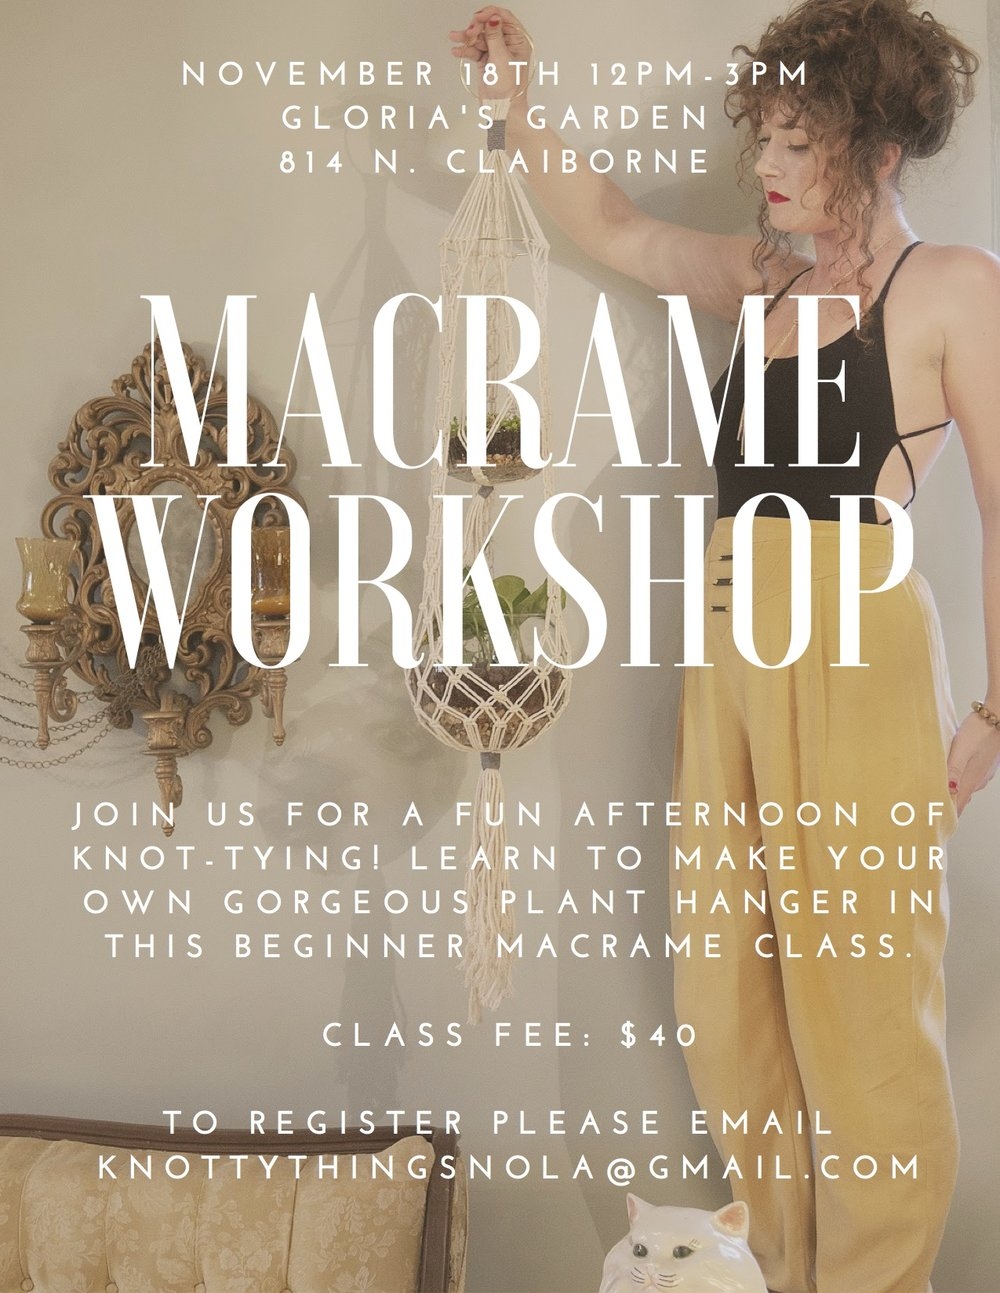 Beginner Macrame Workshop at the Garden! - Join us Nov. 18th, 12:00 pm-3:00 pm for a fun afternoon of knot-tying! Learn to make your own gorgeous plant hanger in this beginner macrame class!.Class fee: $40In this three-hour workshop you will:Learn how to begin a macrame piece, including an overview of necessary materials.How to work a few different macrame knots,How to create design, texture, and pattern within your piece by varying the knots as you work.Leave with a finished plant hanger, and the know-how to design and create more pieces on your own.We provide all the materials you need to complete your unique piece of art.This is a creative and fun class that will give you the basic skills to create a Macramé plant hanger.